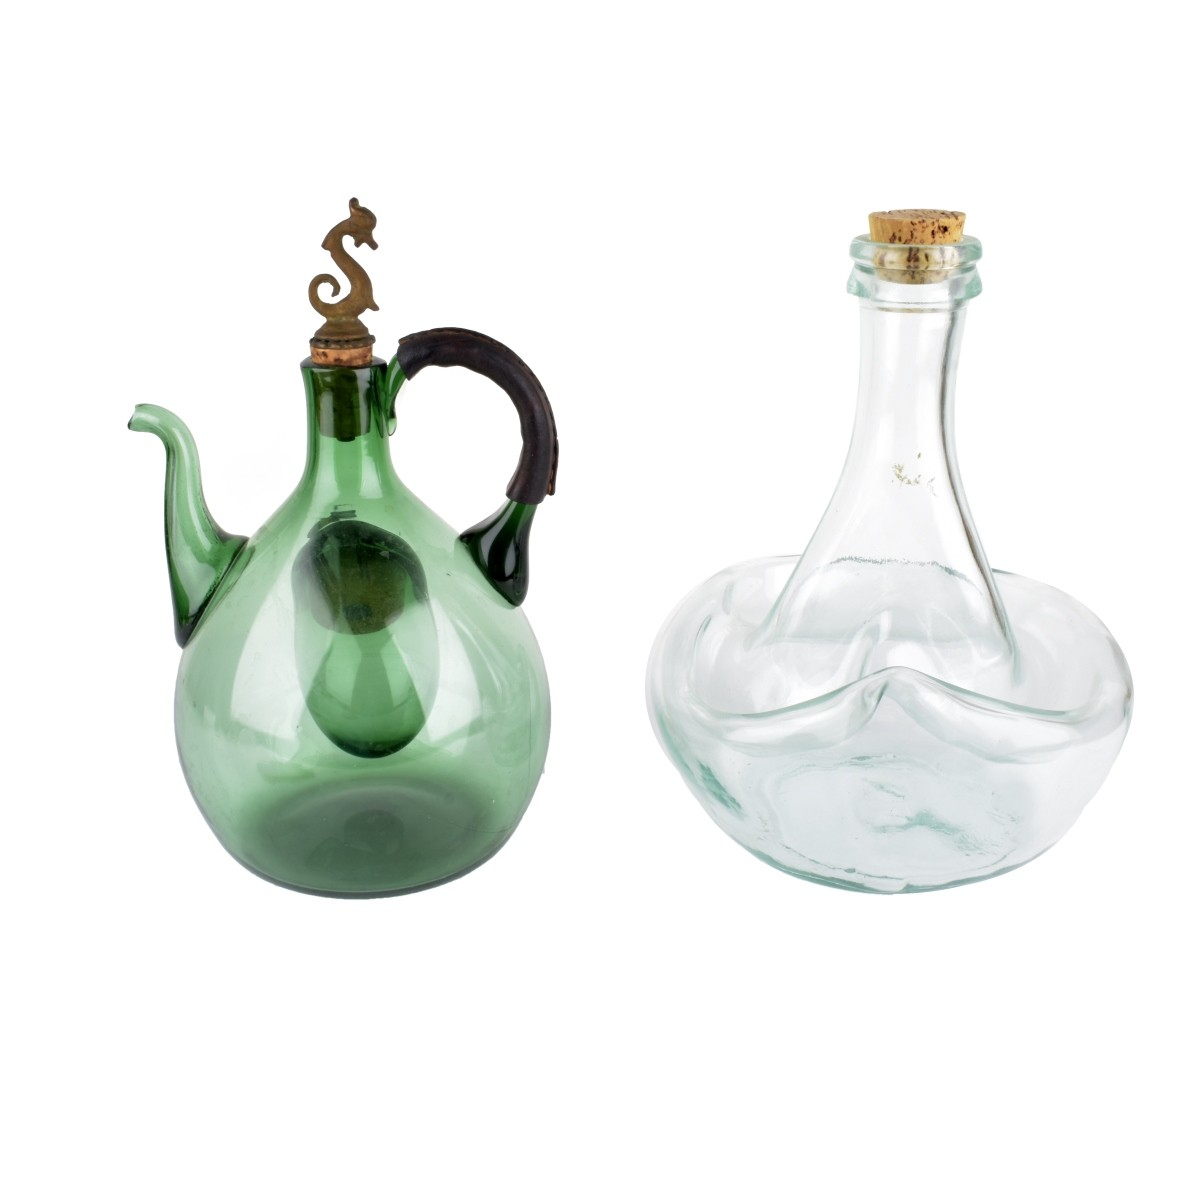 Vintage Art Glass Decanters